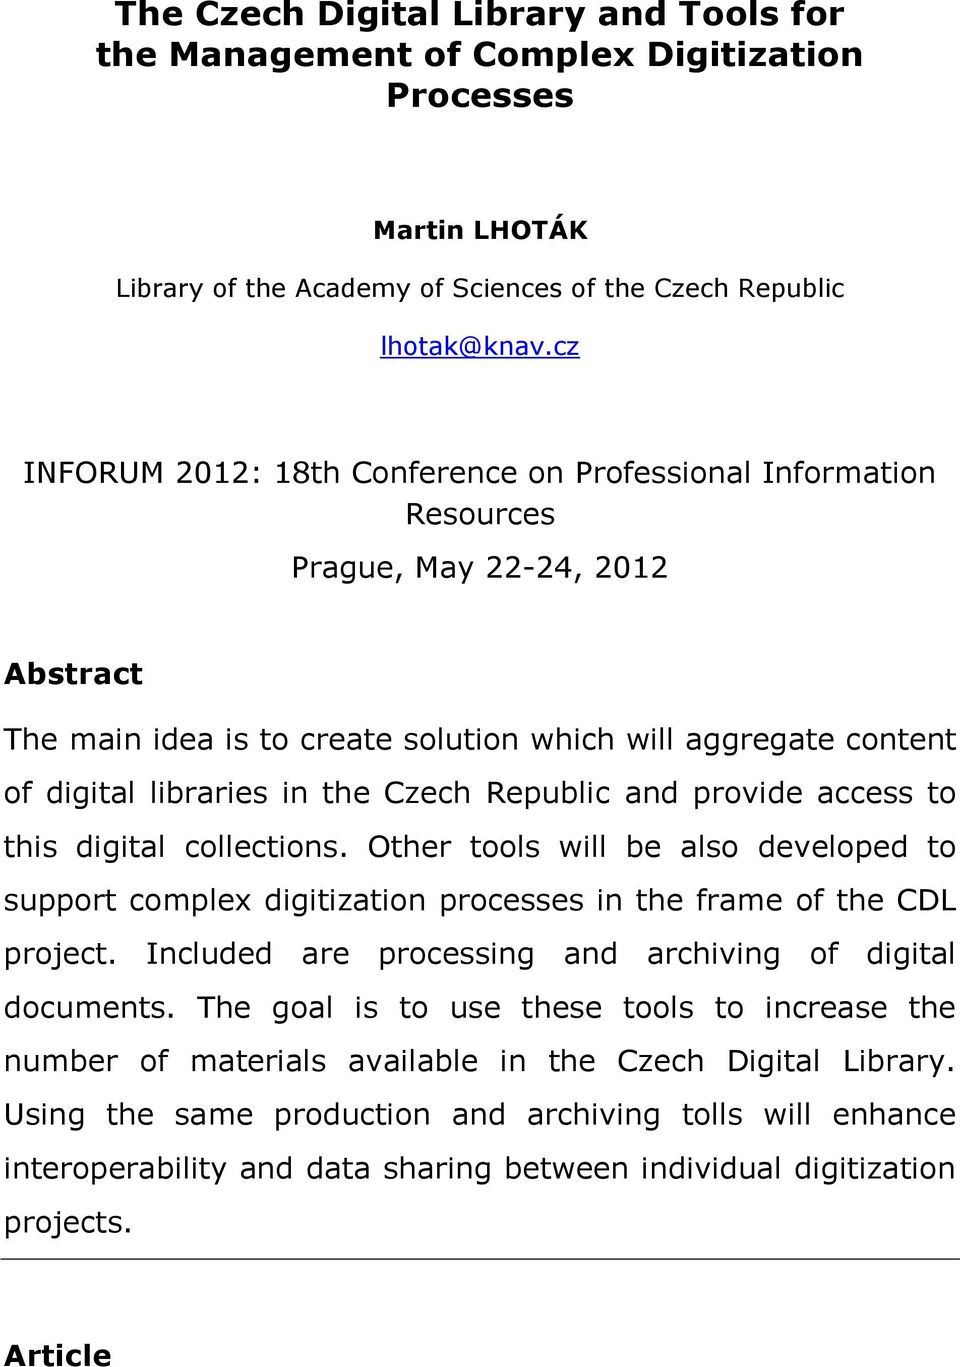 Czech Republic and provide access to this digital collections. Other tools will be also developed to support complex digitization processes in the frame of the CDL project.